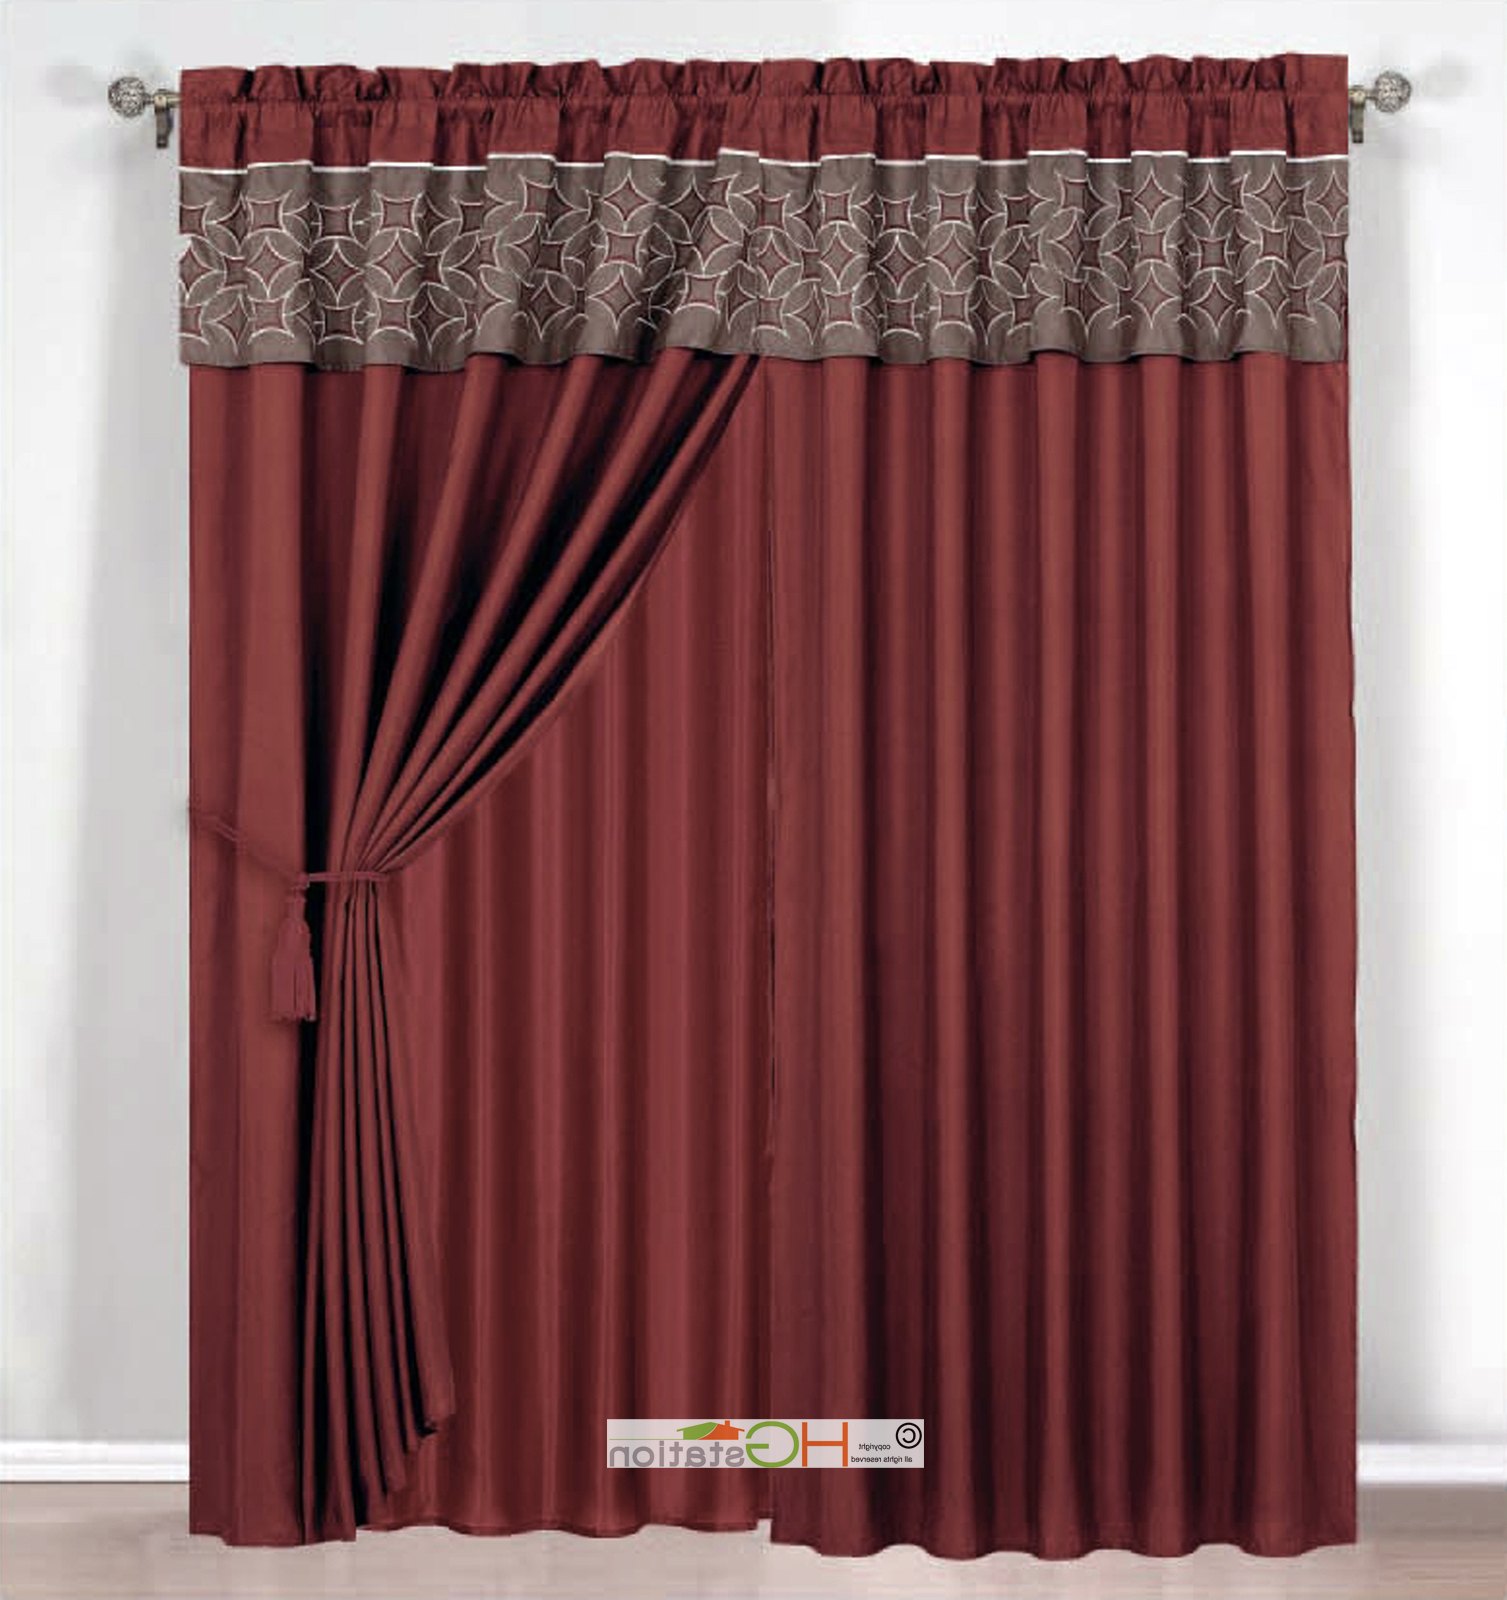 Circle Curtain Valances In Most Up To Date Details About 4 Pc Embroidered Medallion Circle Curtain Set Rust Coffee  Valance Drape Liner (View 4 of 20)